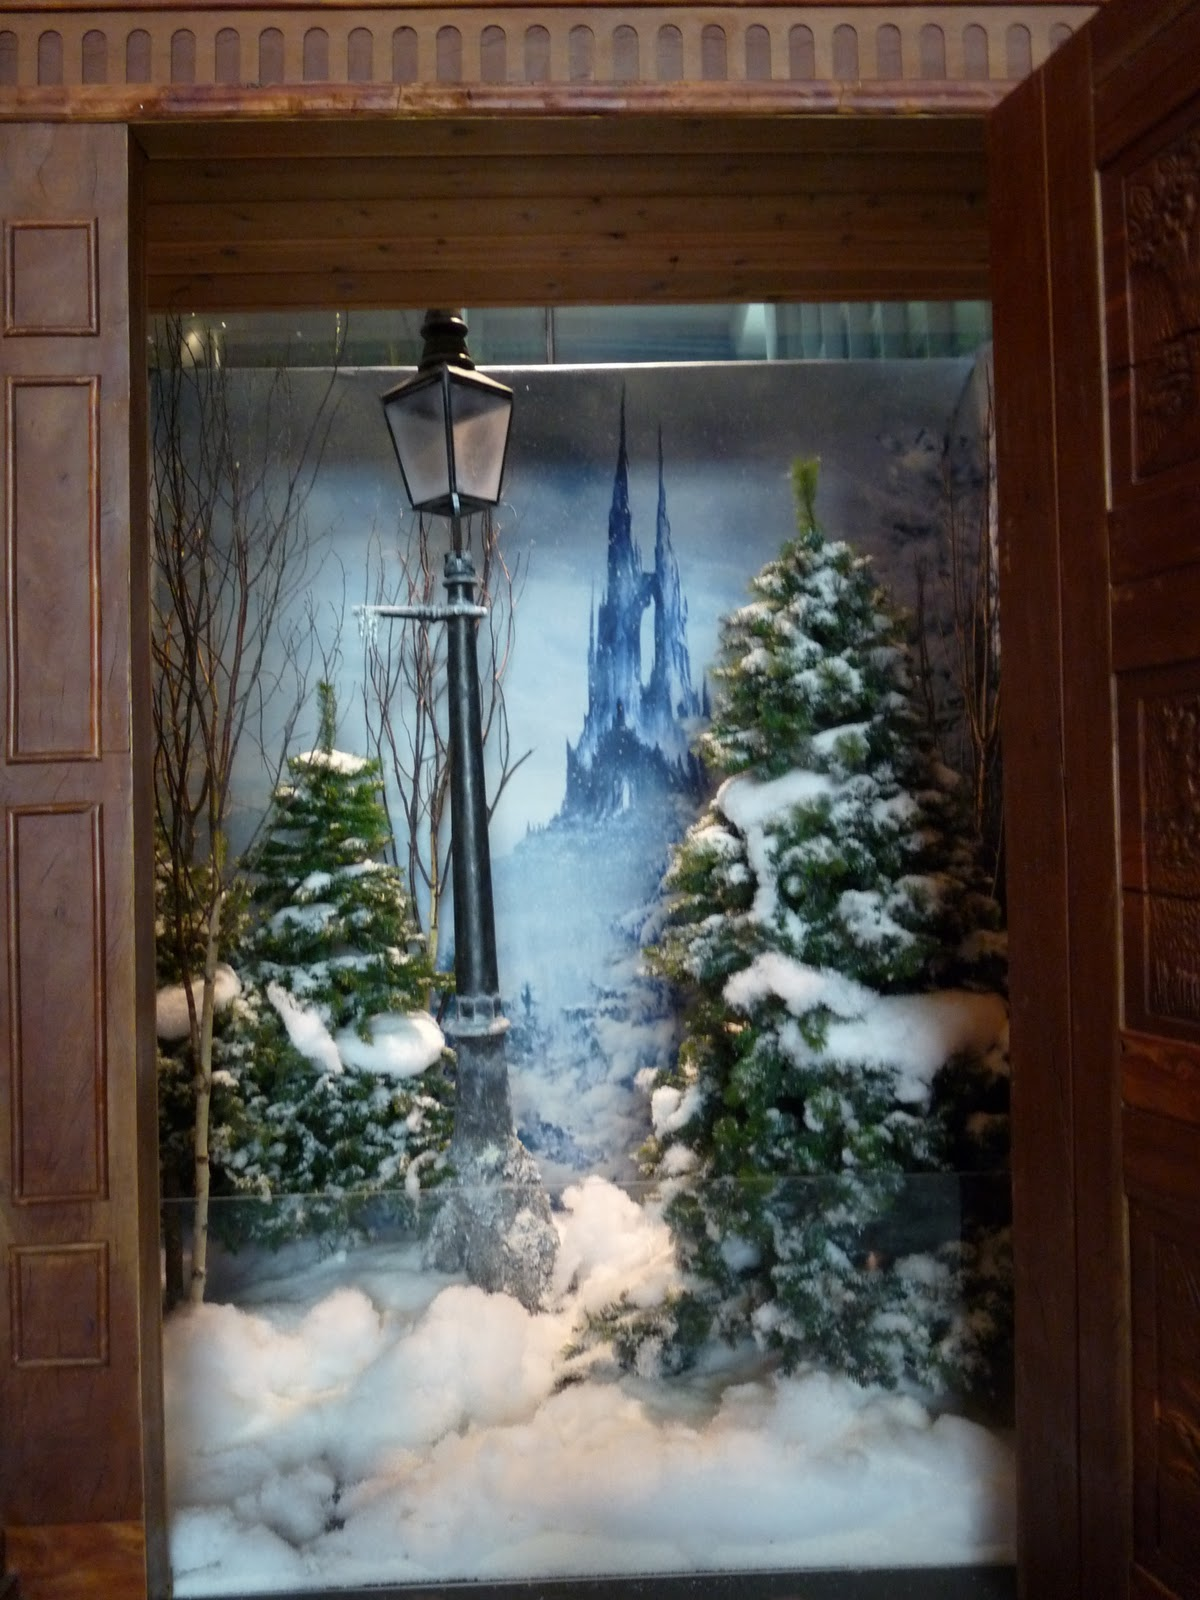 eastcoastlife: The Chronicles of Narnia: The Exhibition ...